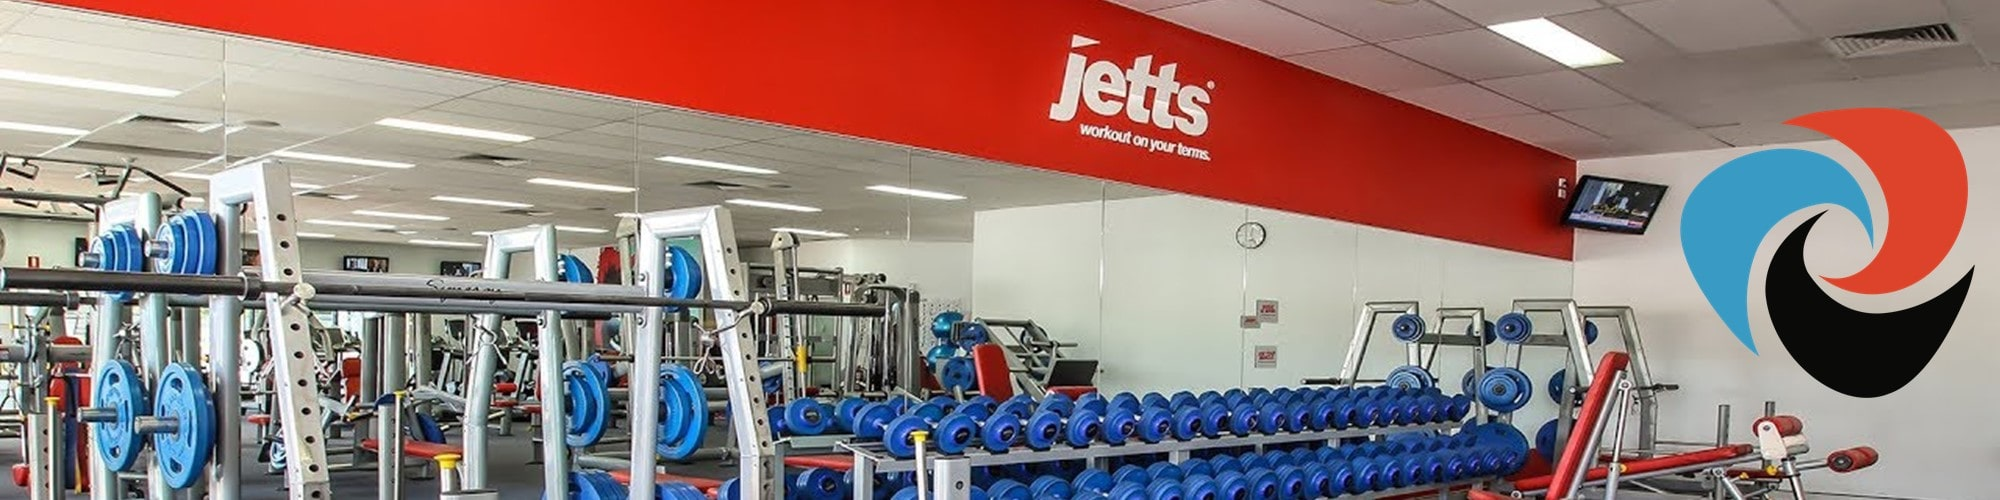 Rapid Cold Jetts Gym Study Feature